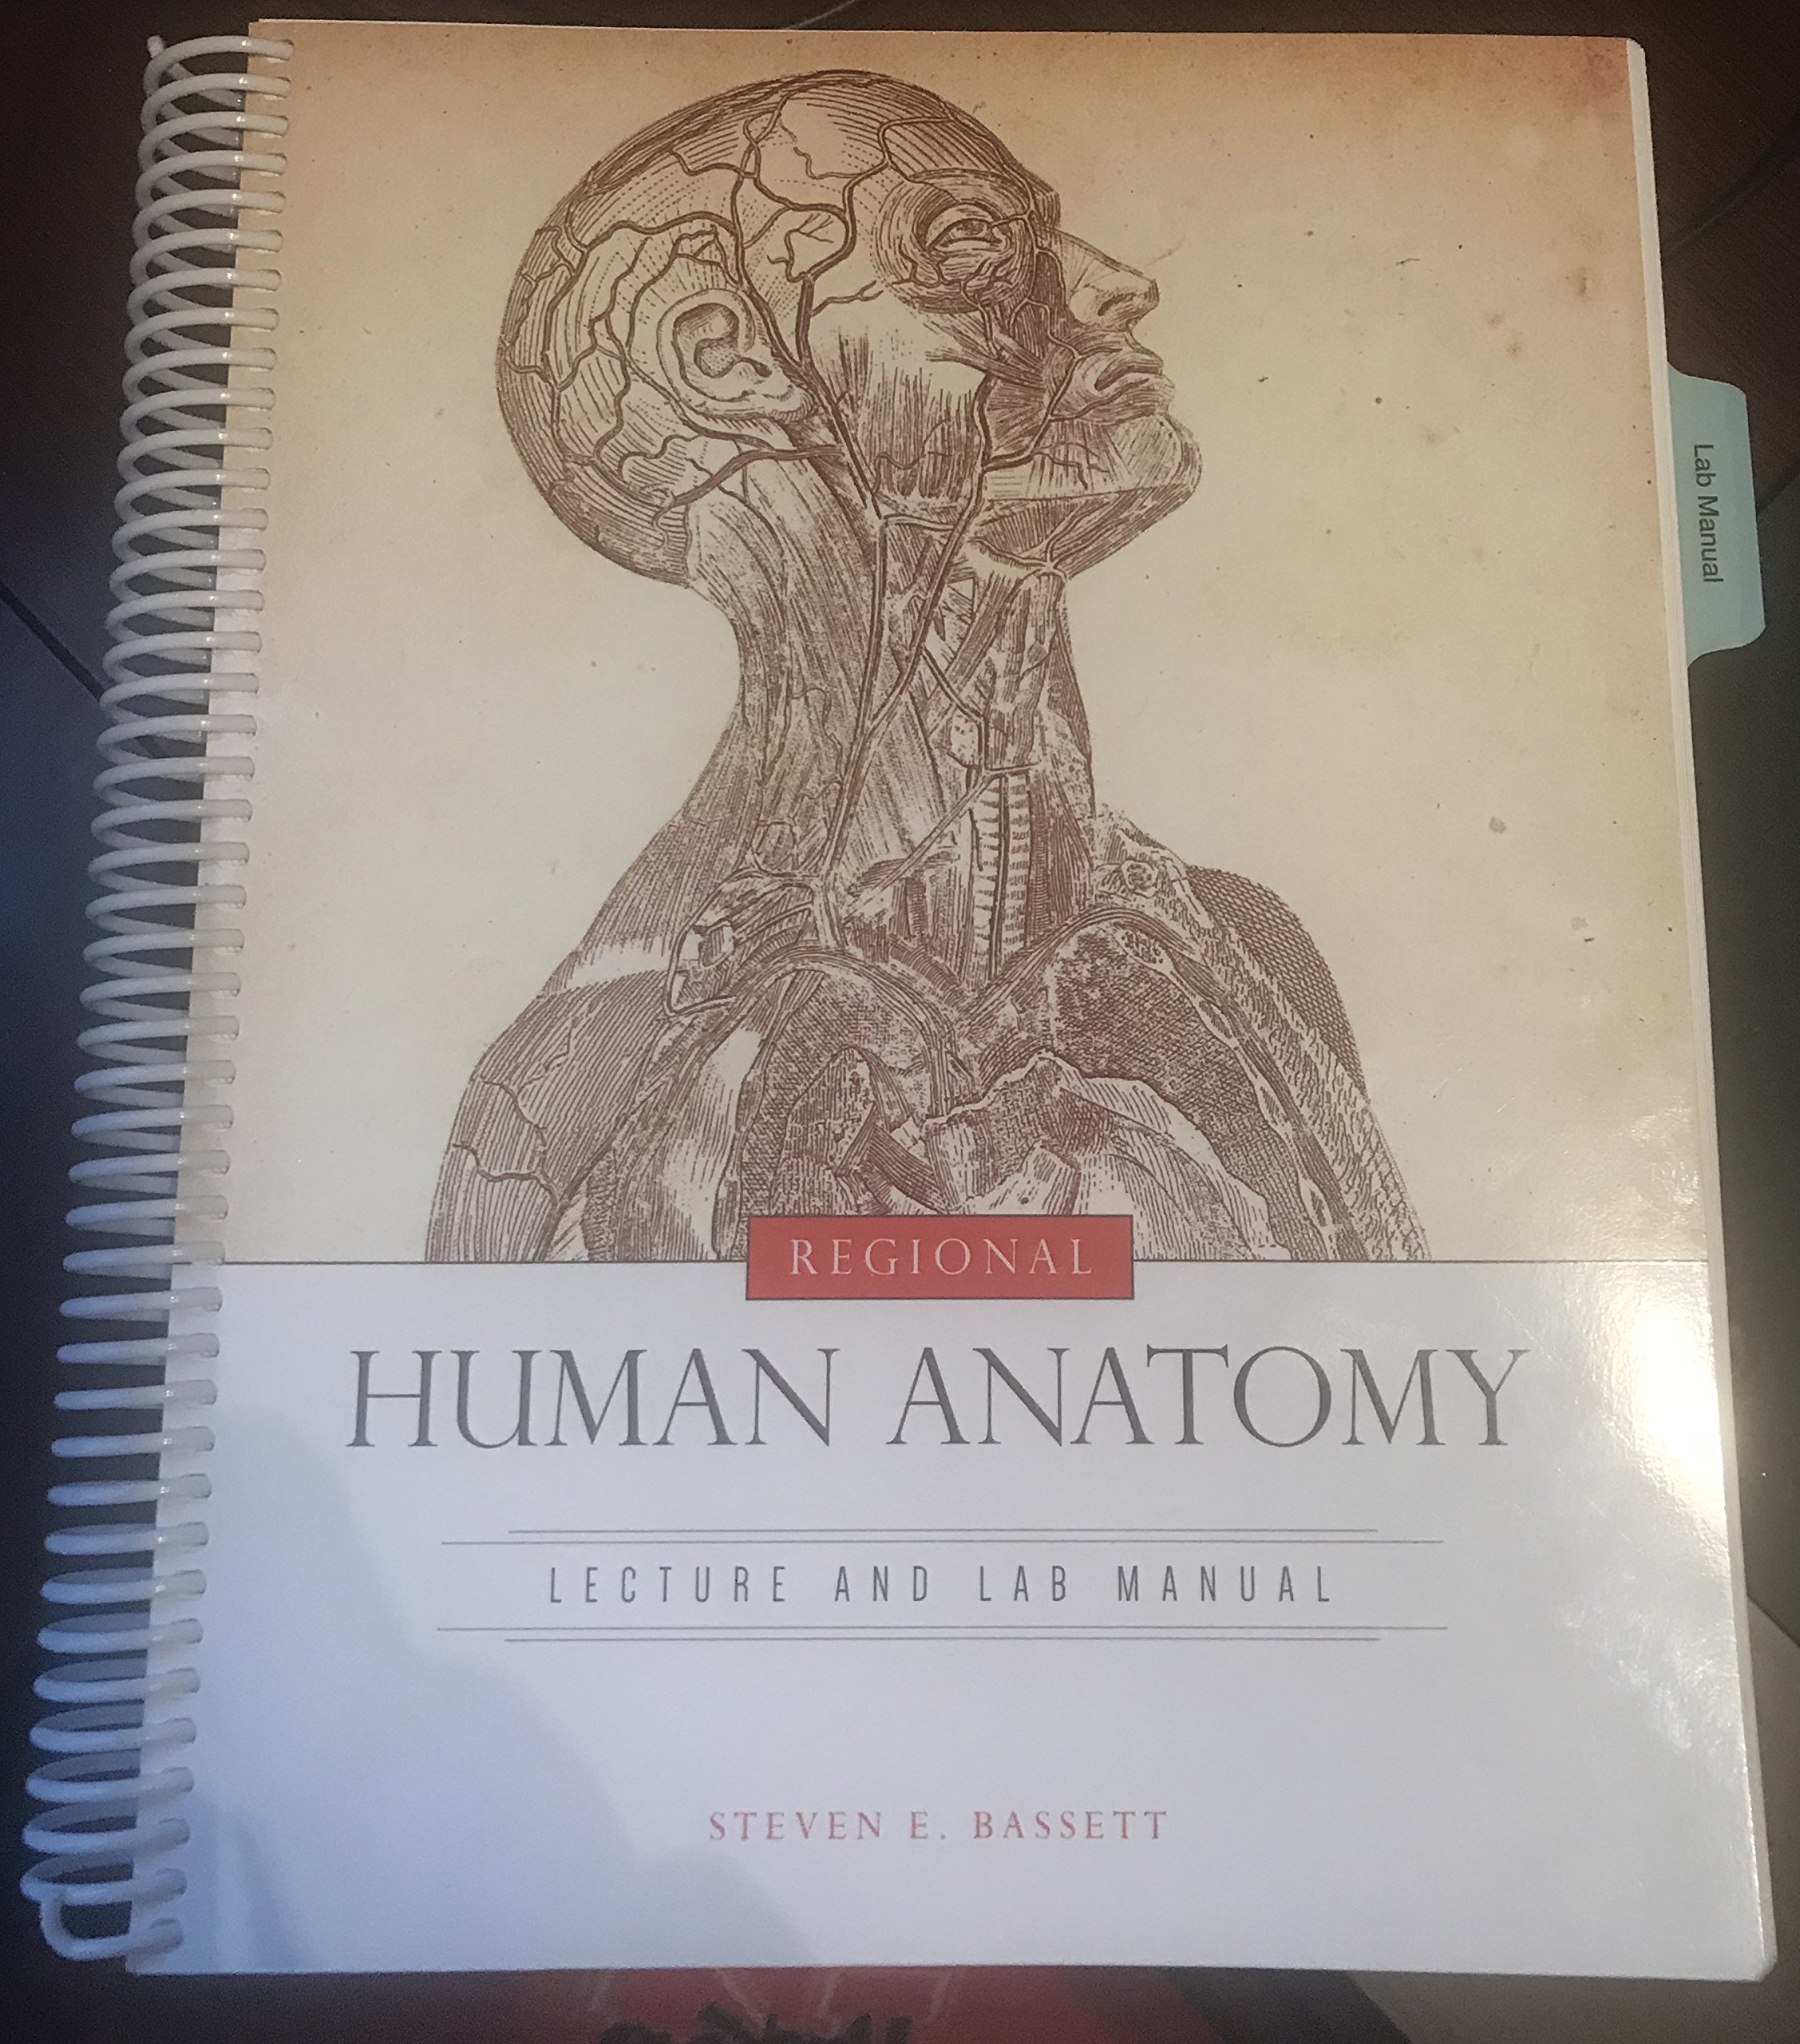 Human Anatomy Lecture And Lab Material Steven E Basset